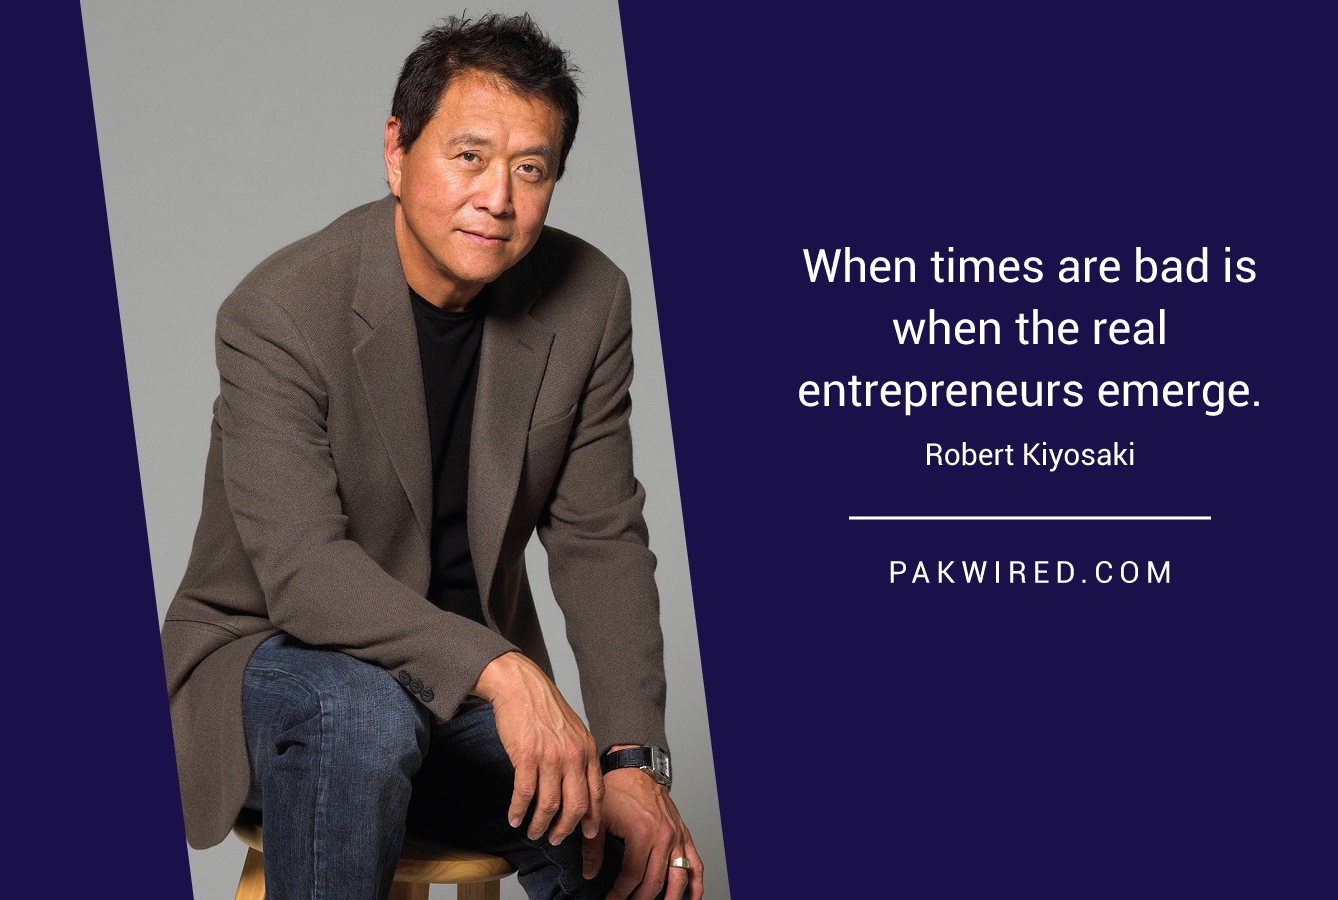 when-times-are-bad-is-when-the-real-entrepreneurs-emerge-robert-kiyosaki